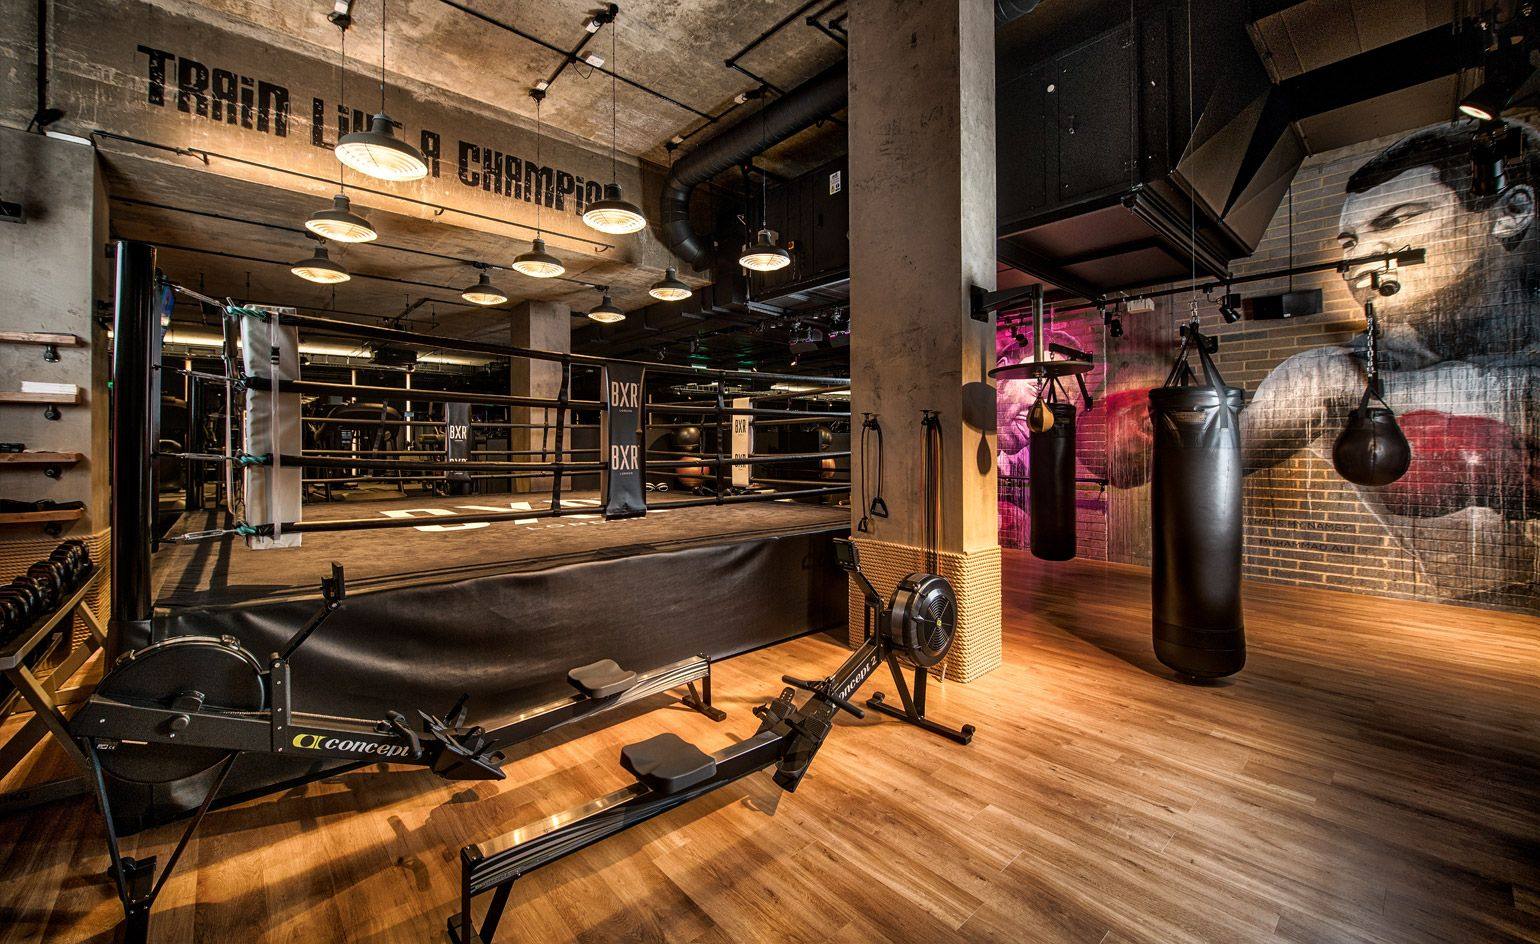 Knock out bergman interiors packs a punch at boutique boxing gym